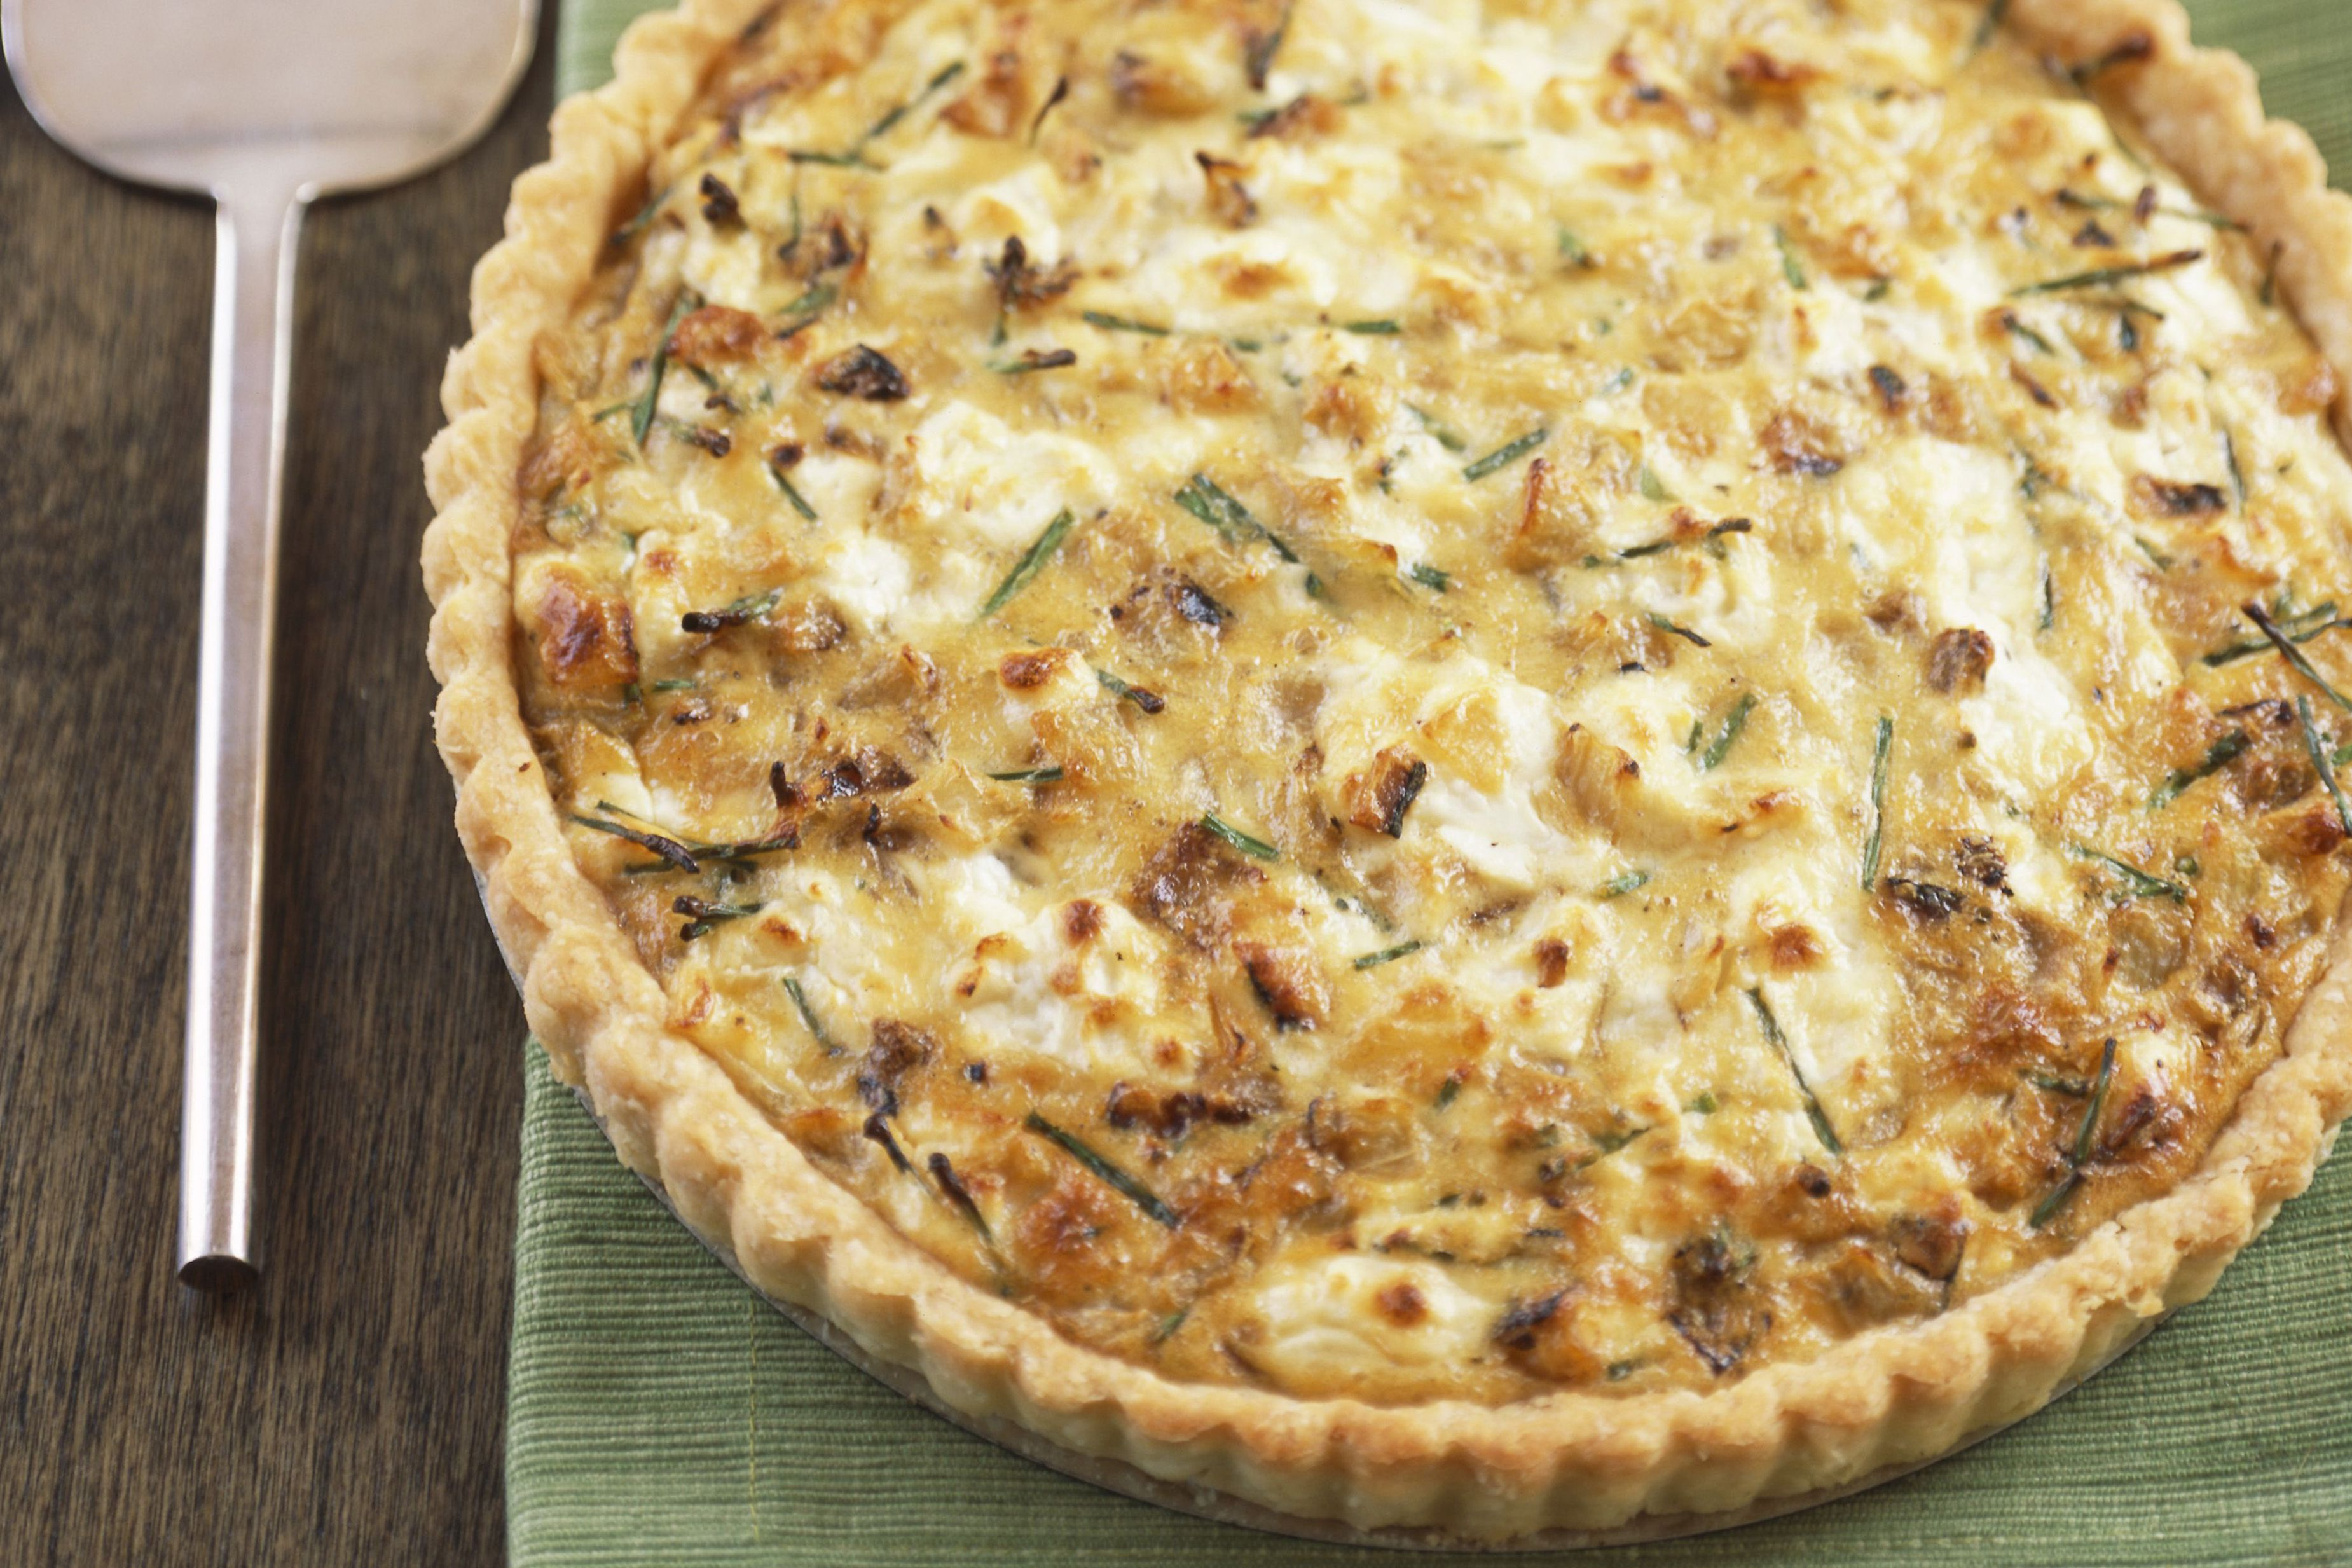 This Cheese and Sausage Quiche Doesn't Skimp on Protein